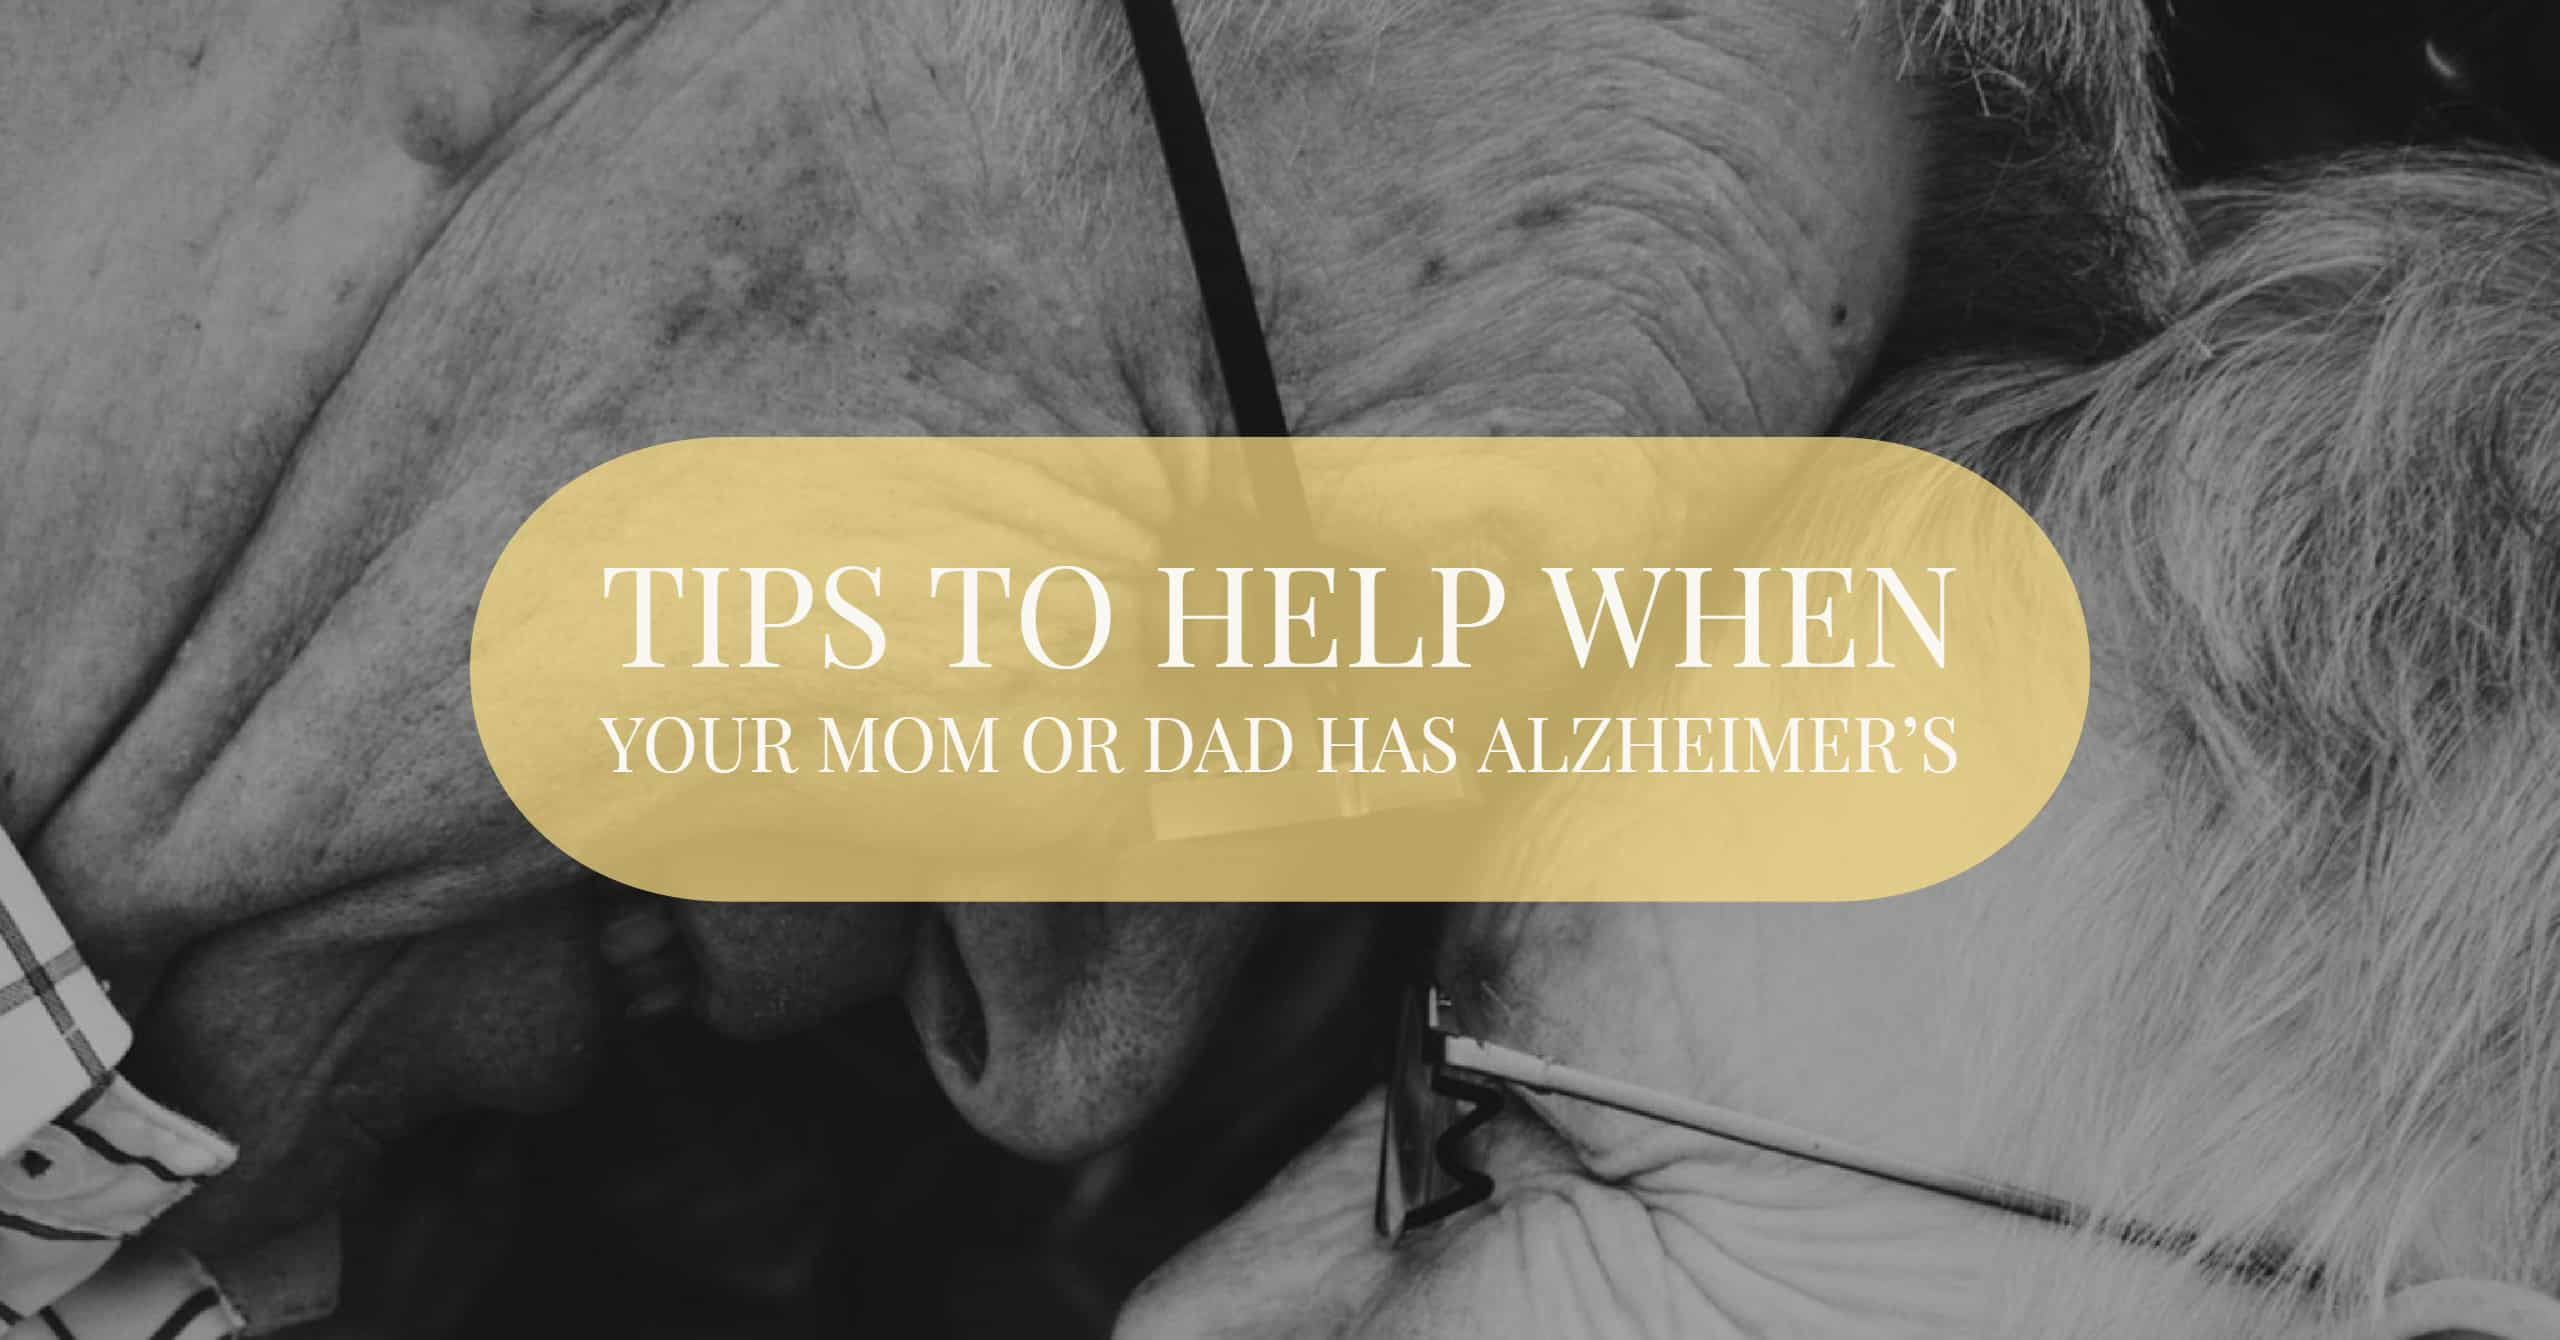 Tips To Help When Your Mom or Dad has Alzheimer's